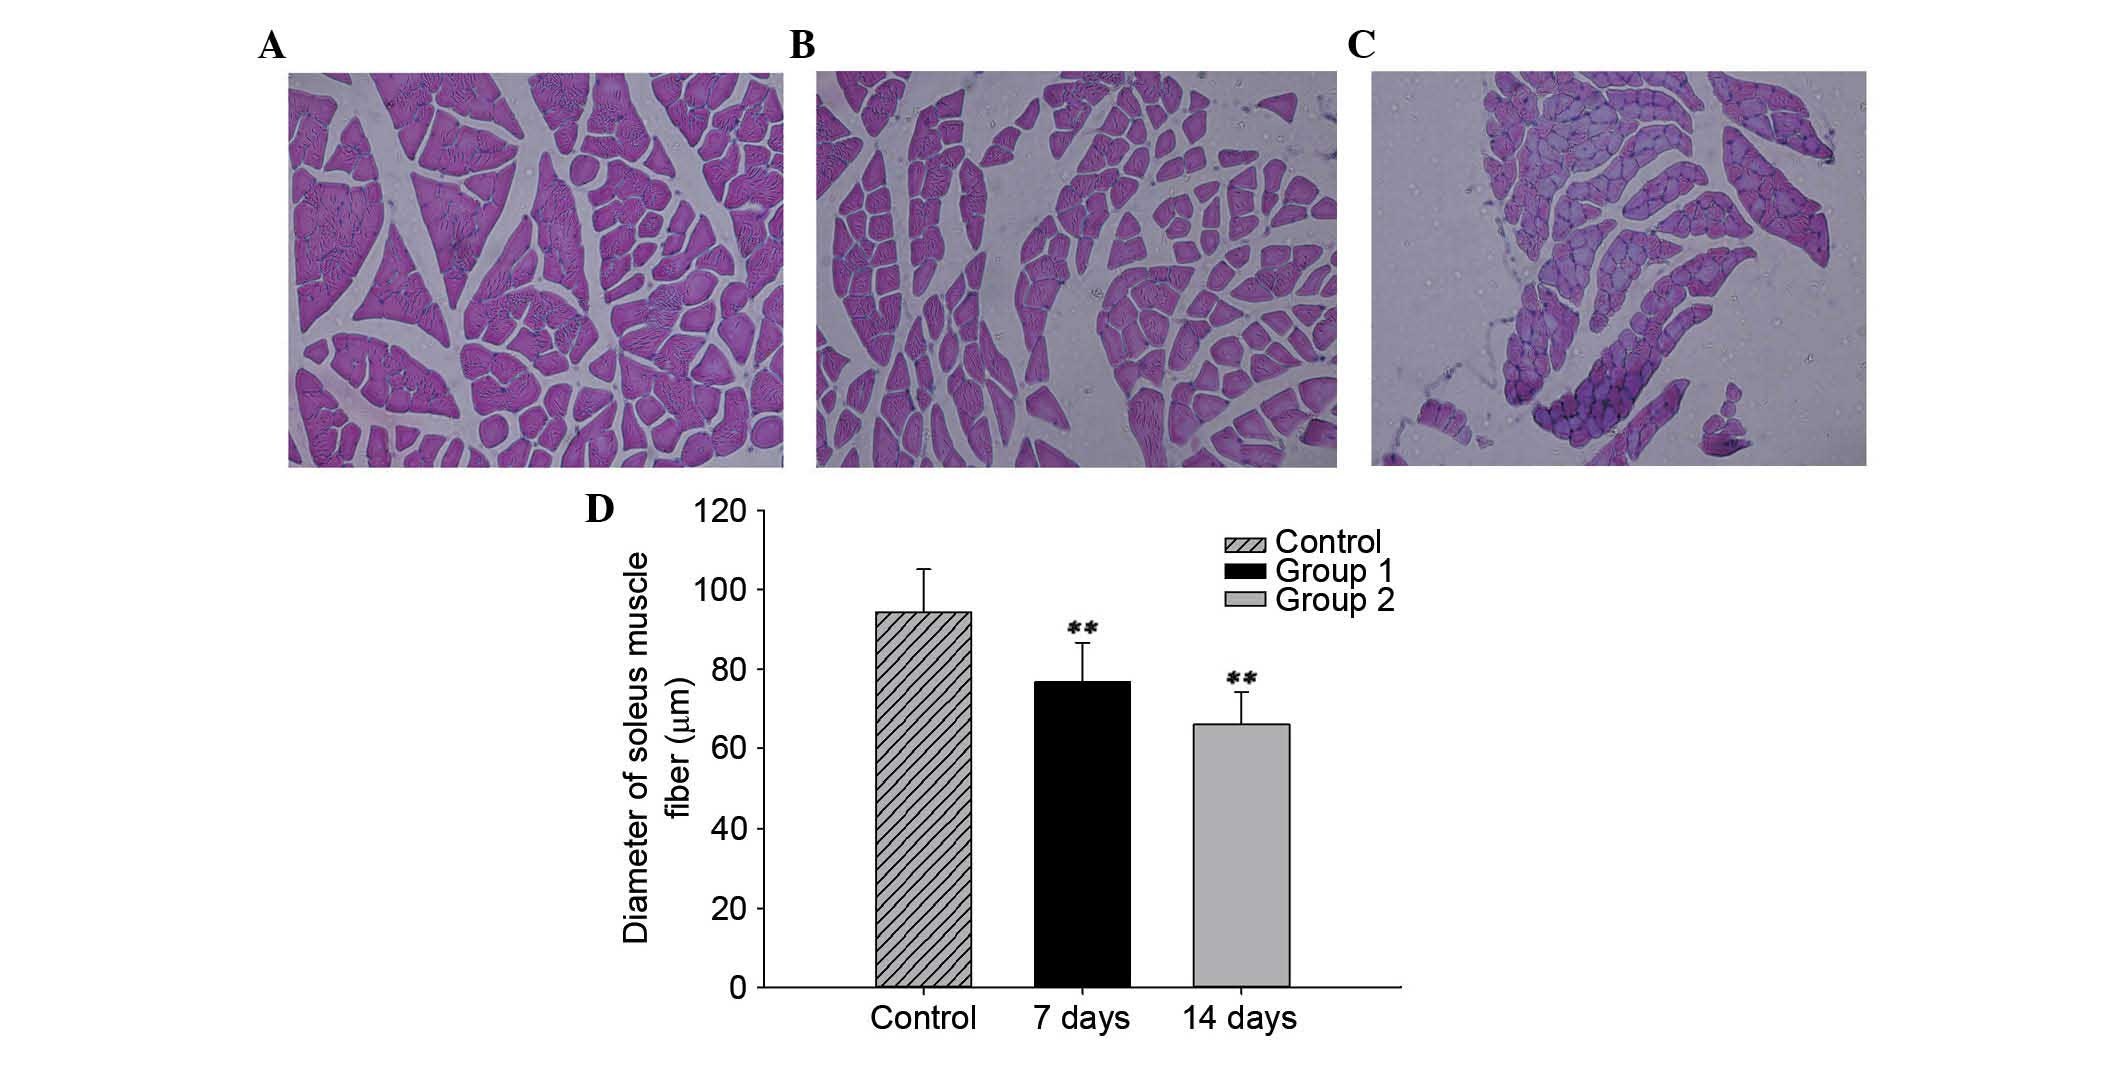 analysis of the glycerinated muscle fiber The effect of phosphate and calcium on force generation in glycerinated rabbit skeletal muscle fibers a steady-state and transient kinetic study.